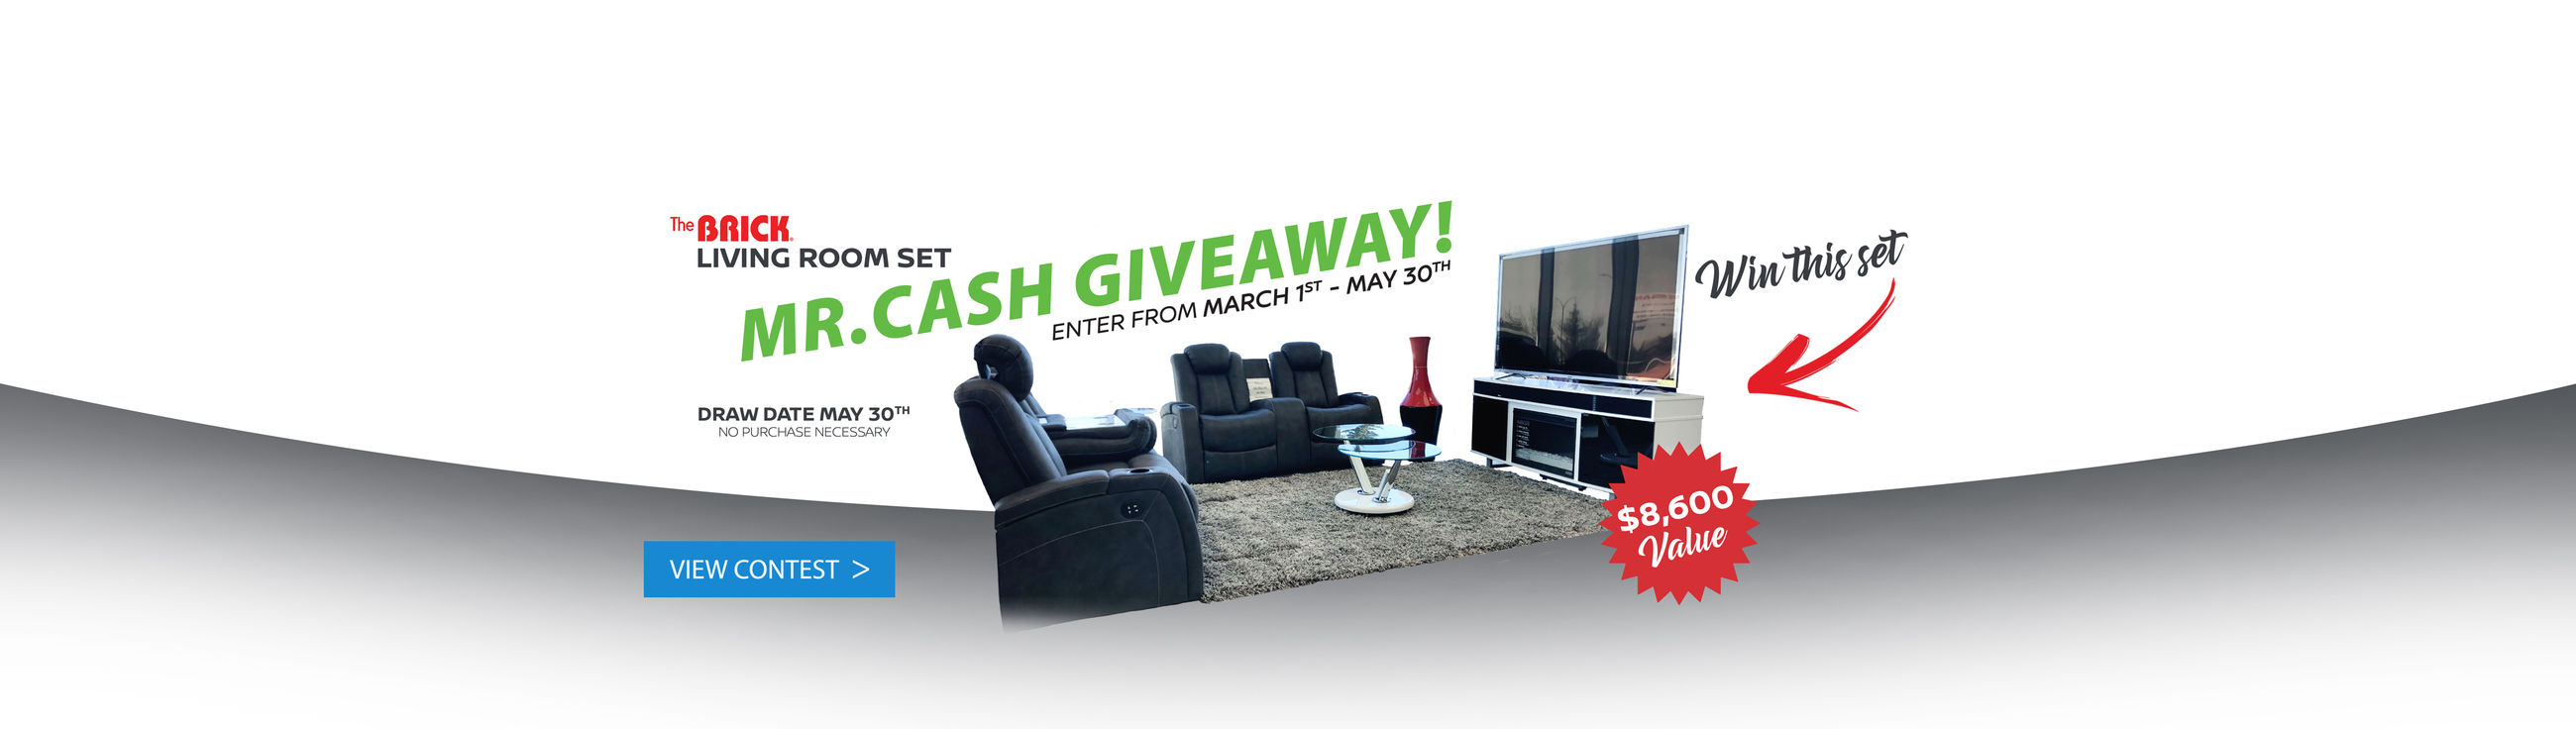 MR.CASH Living Room Set GIVEAWAY!